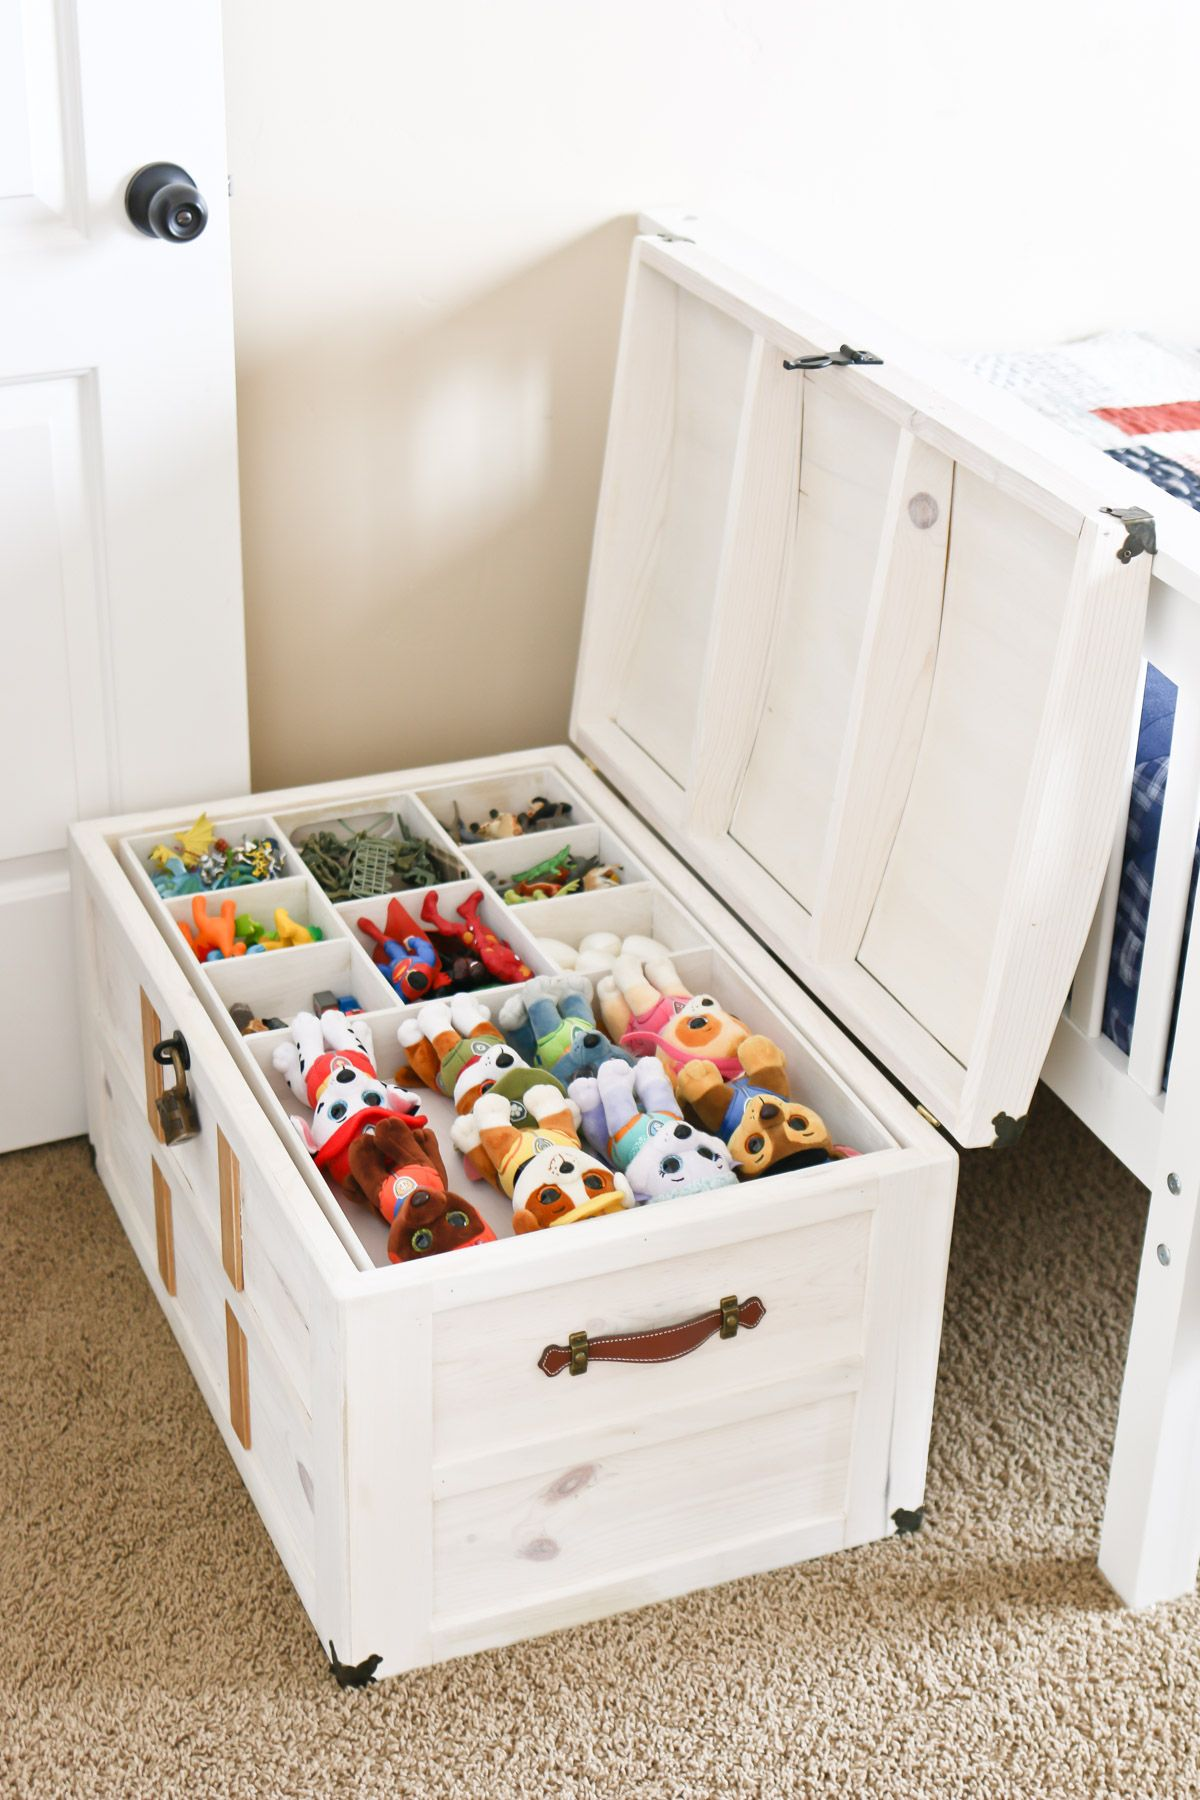 Diy Toy Storage Treasure Chest Diy Toy Storage Storage Kids Room Kids Rooms Diy